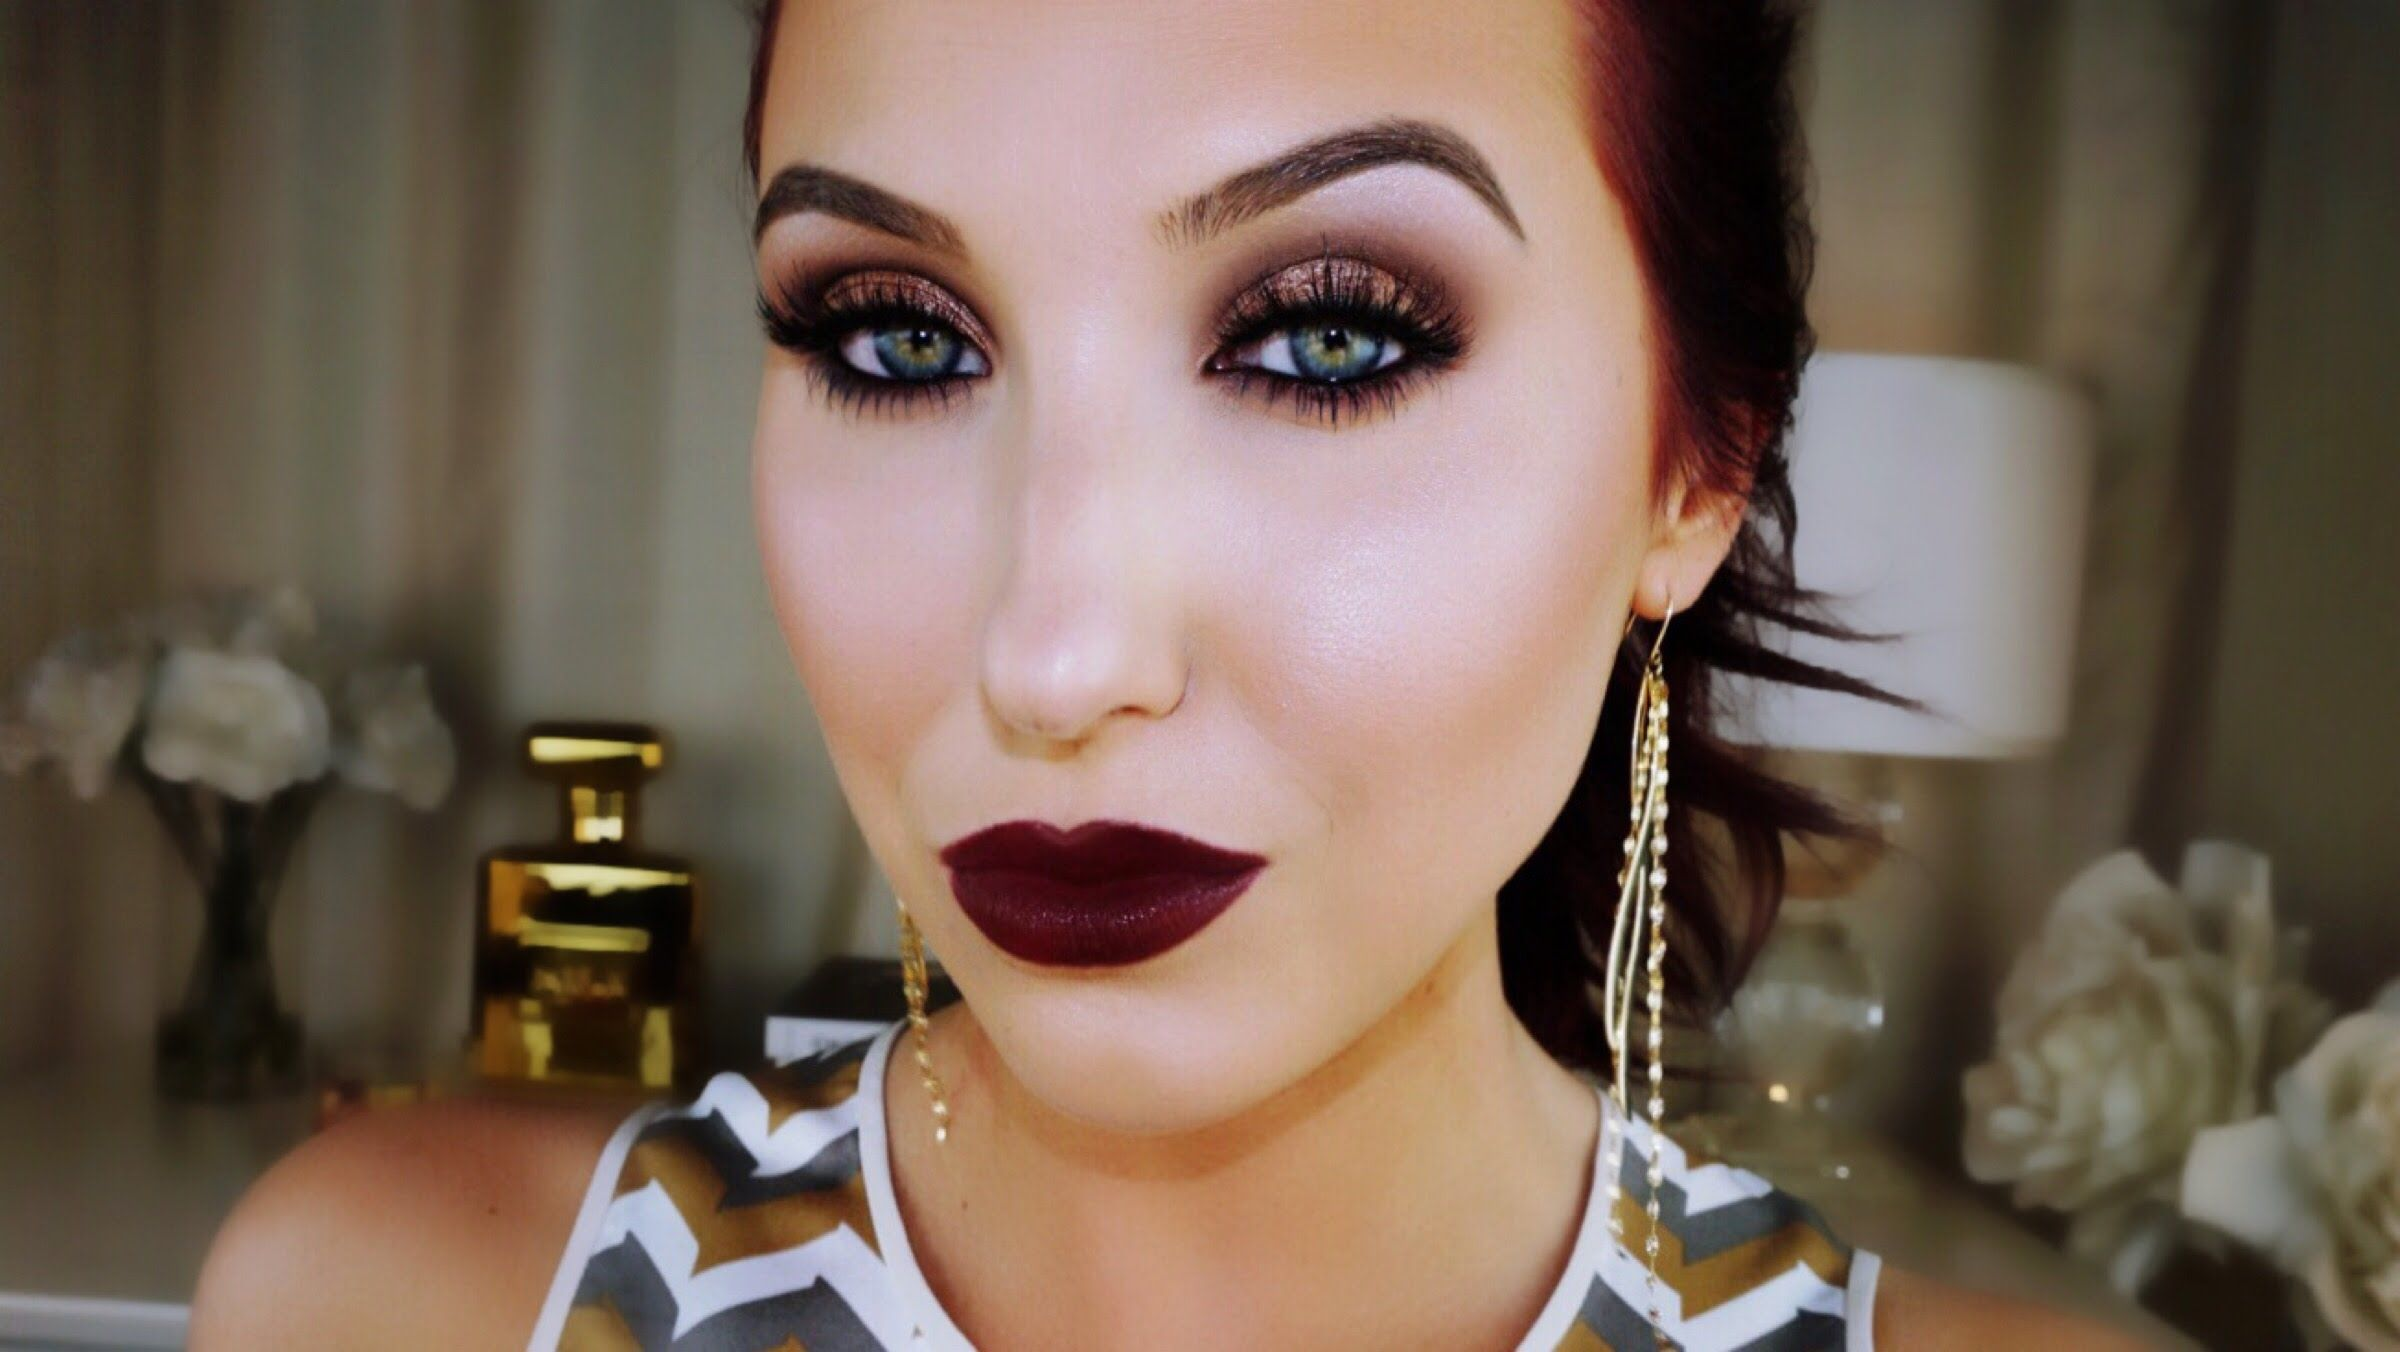 new makeup tutorial on affordable makeup for this fall i hope you like this fall makeup look i m always on the lookout for affordable and good quality